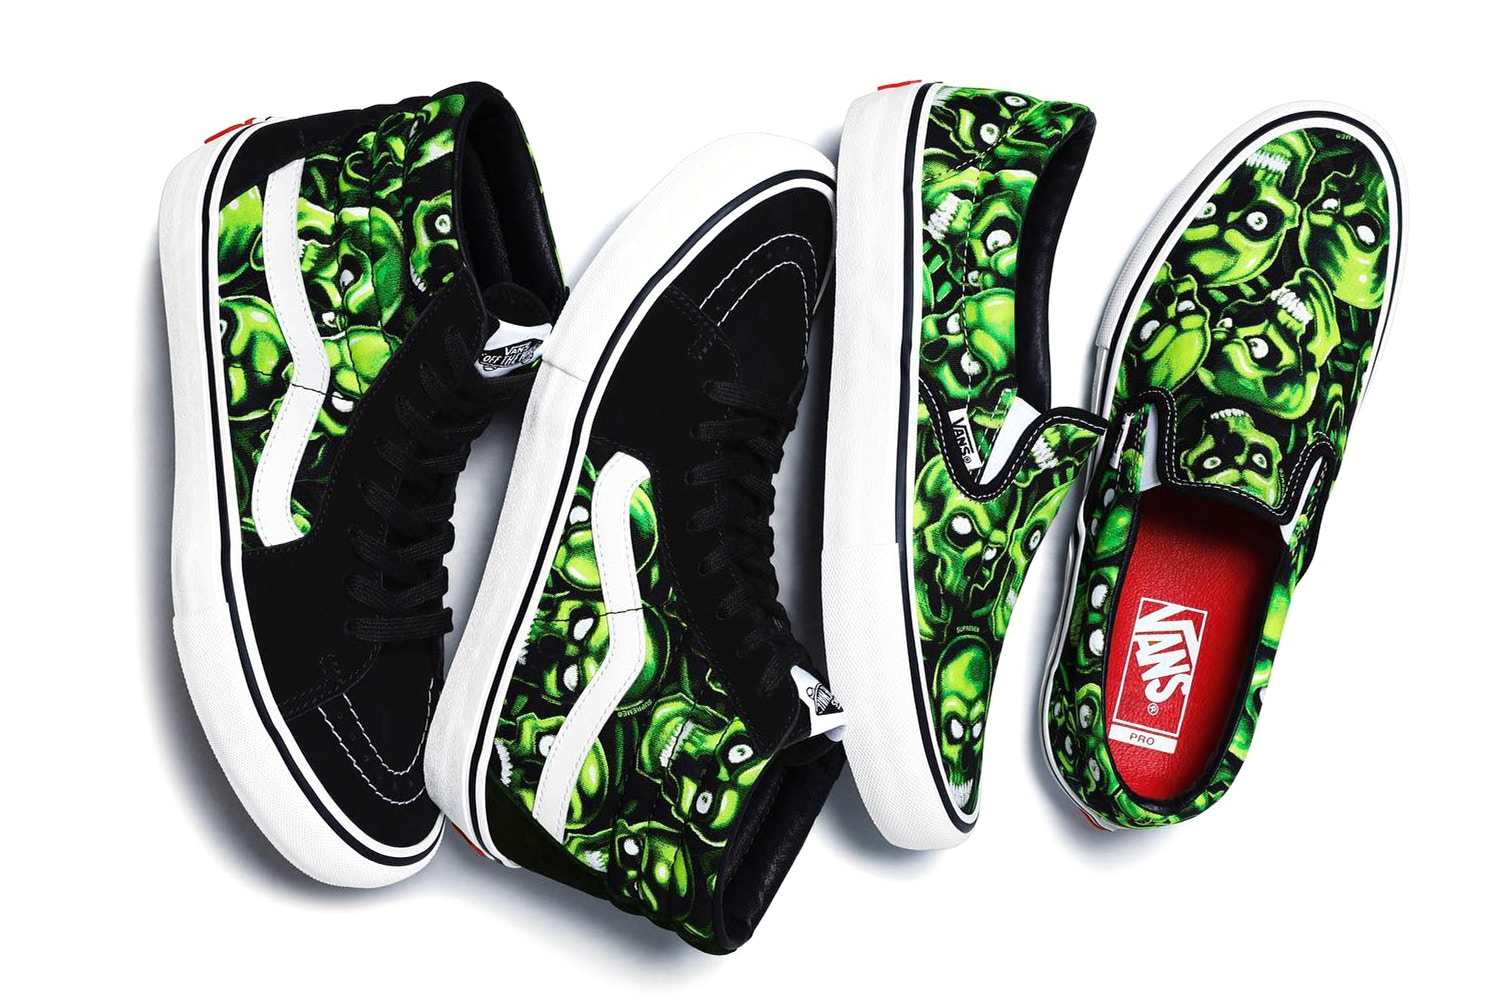 Supreme x Vans Skull Print Collaboration